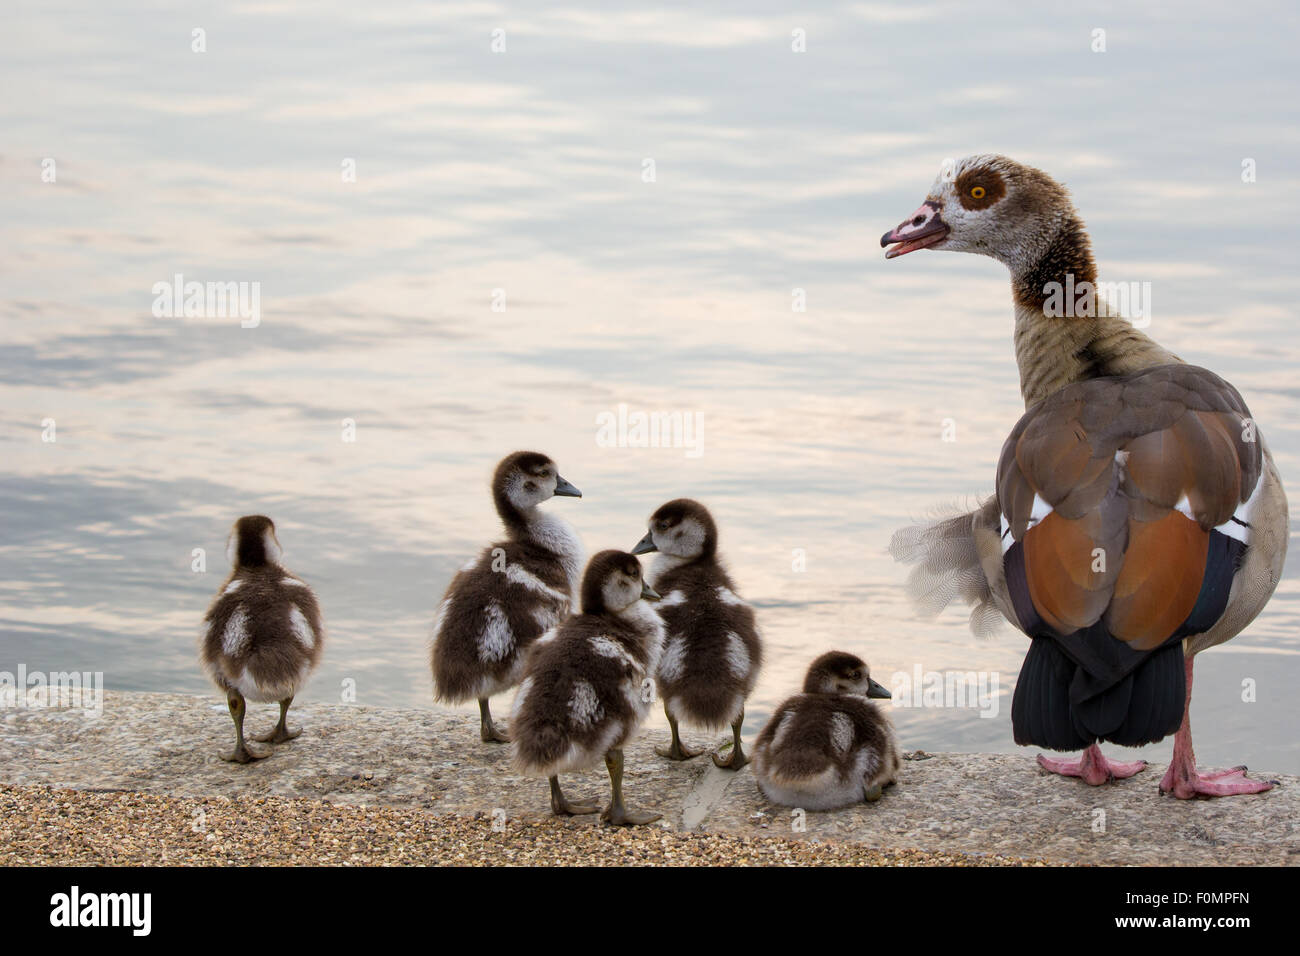 Egyptian Goose with Chicks - Stock Image